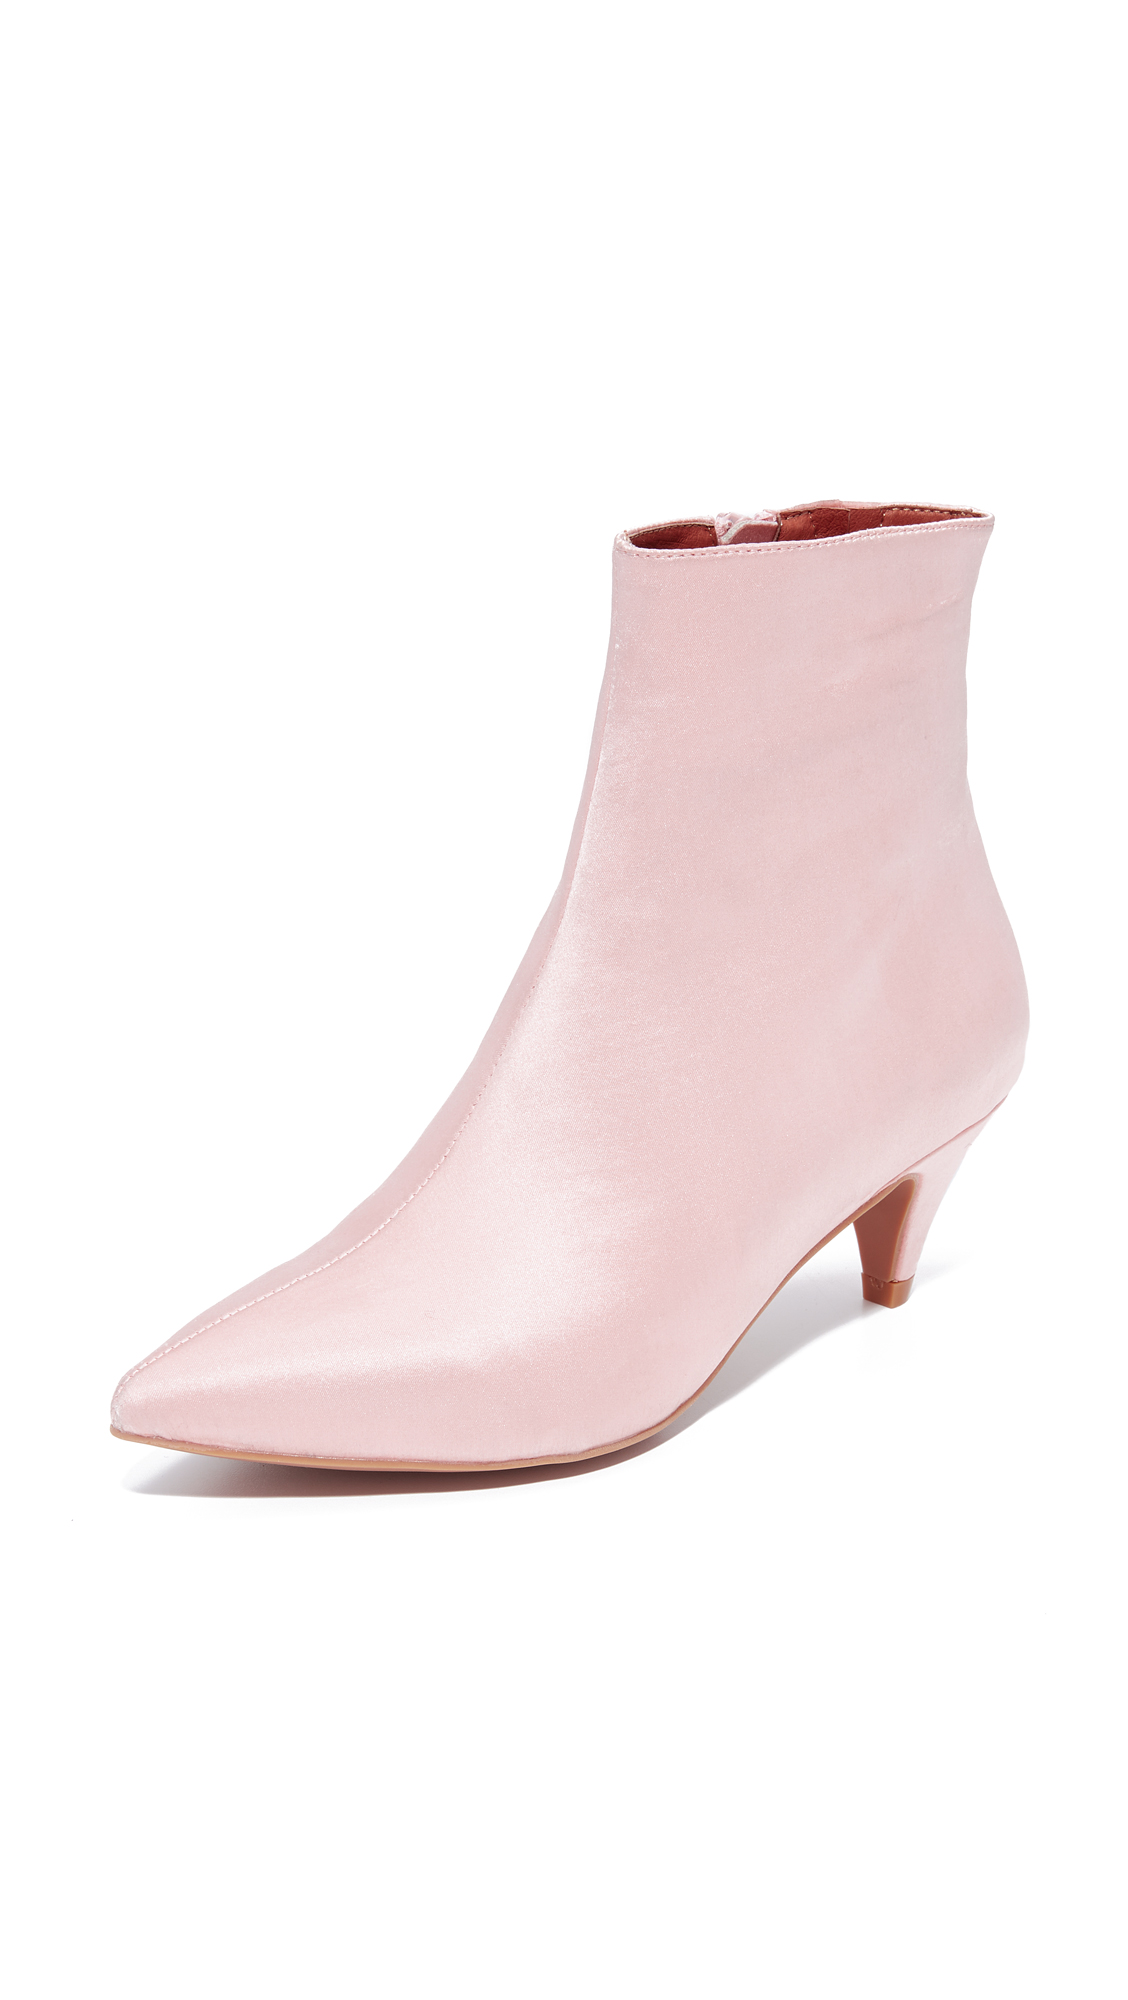 Jeffrey Campbell Muse Satin Kitten Heel Booties - Blush